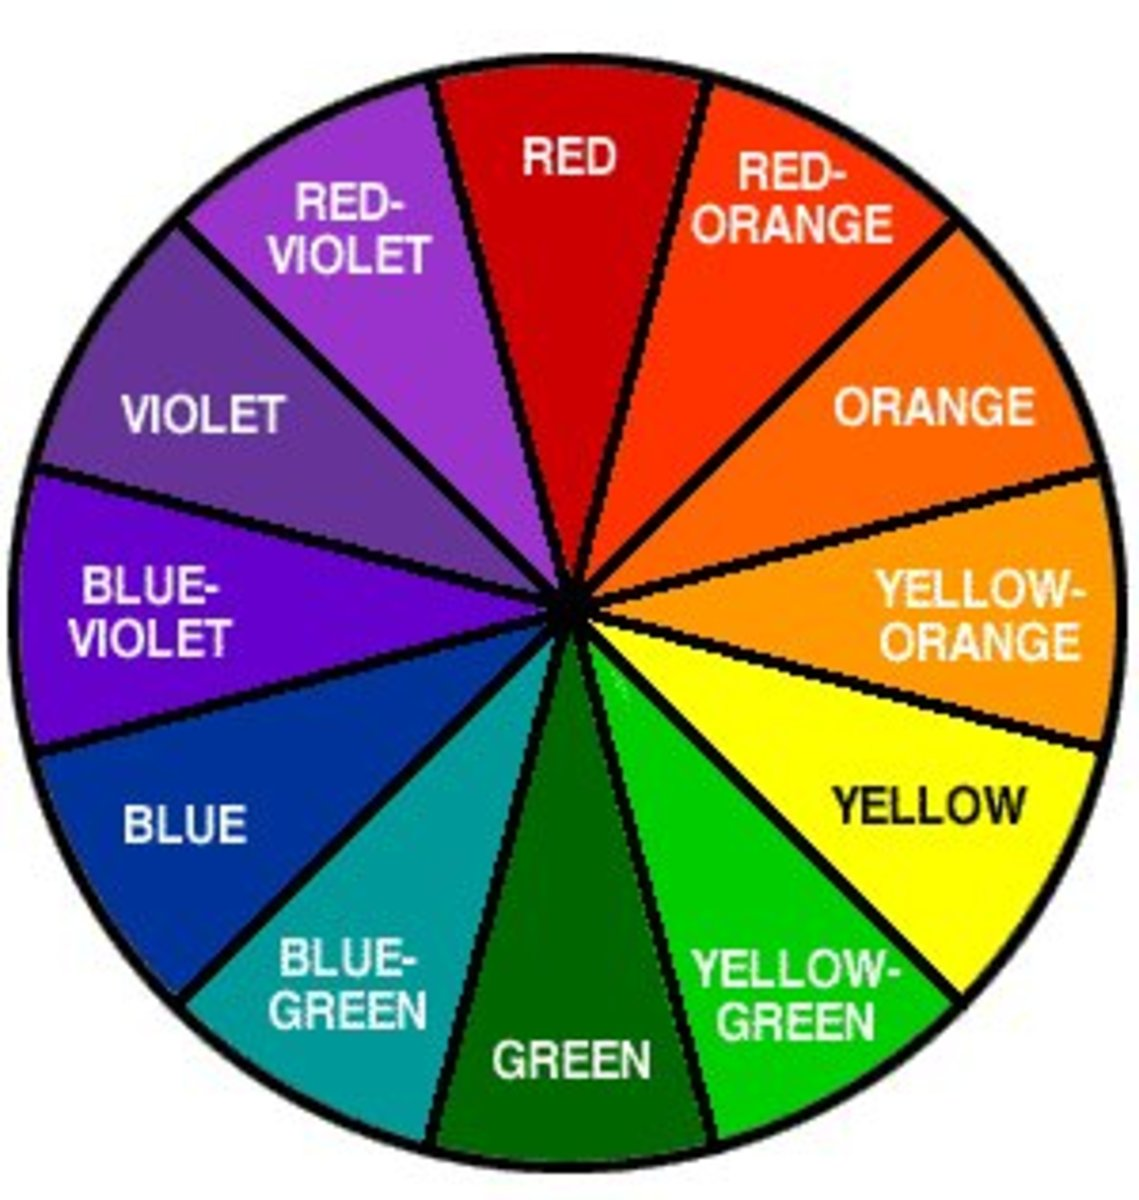 Colors directly opposite each other on the color wheel neutralize each other, whilst colors next to each other mix to form new colors.